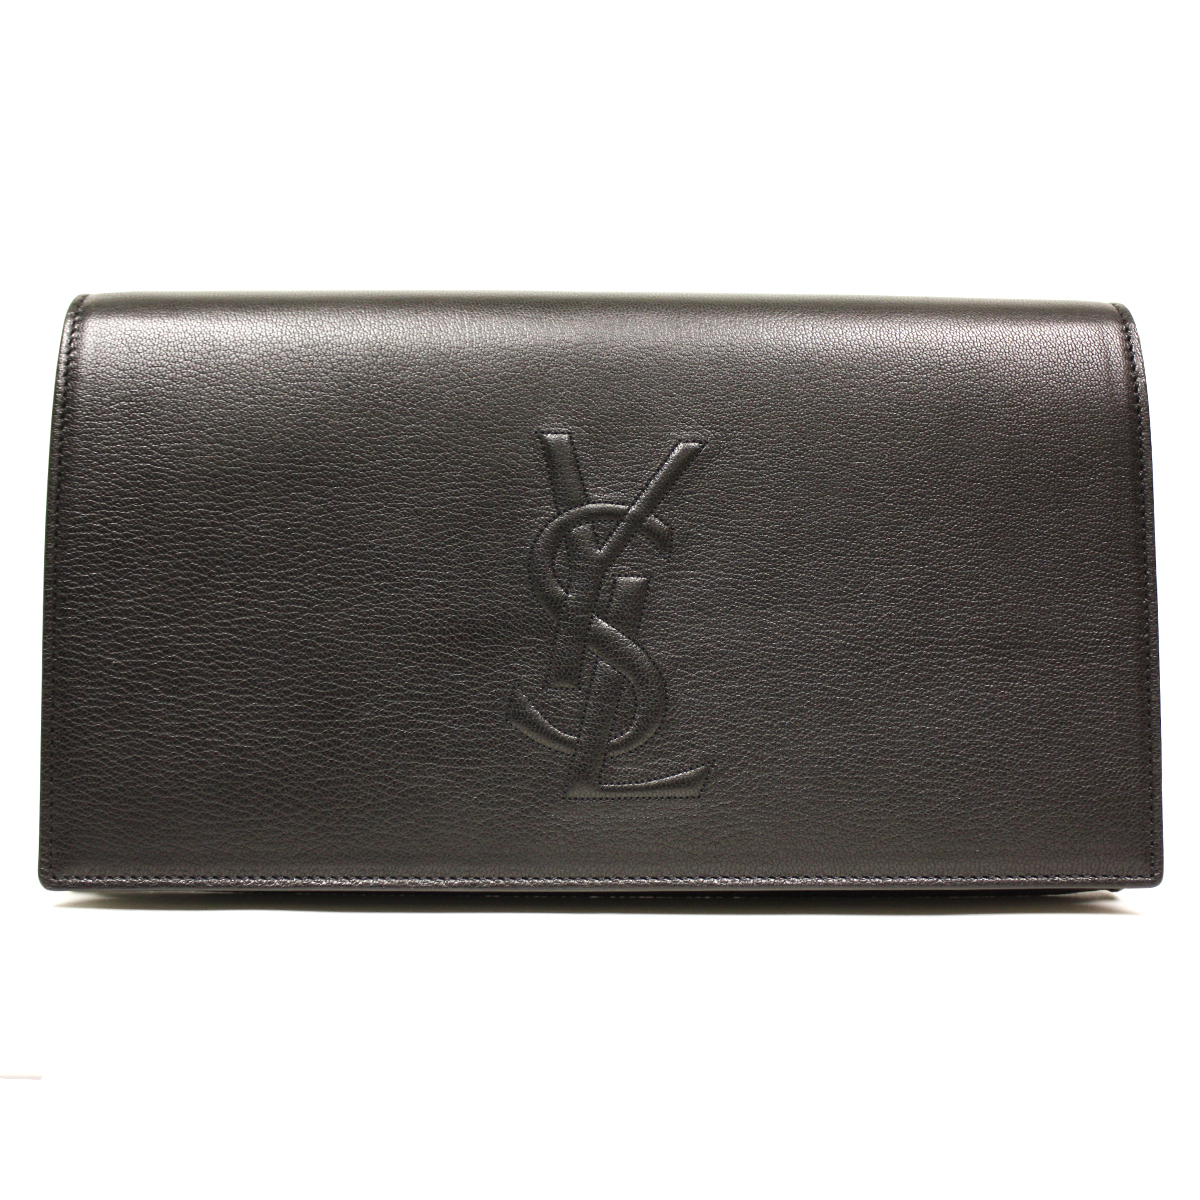 Yves Saint Laurent Black Clutch Tote Bag Ysl